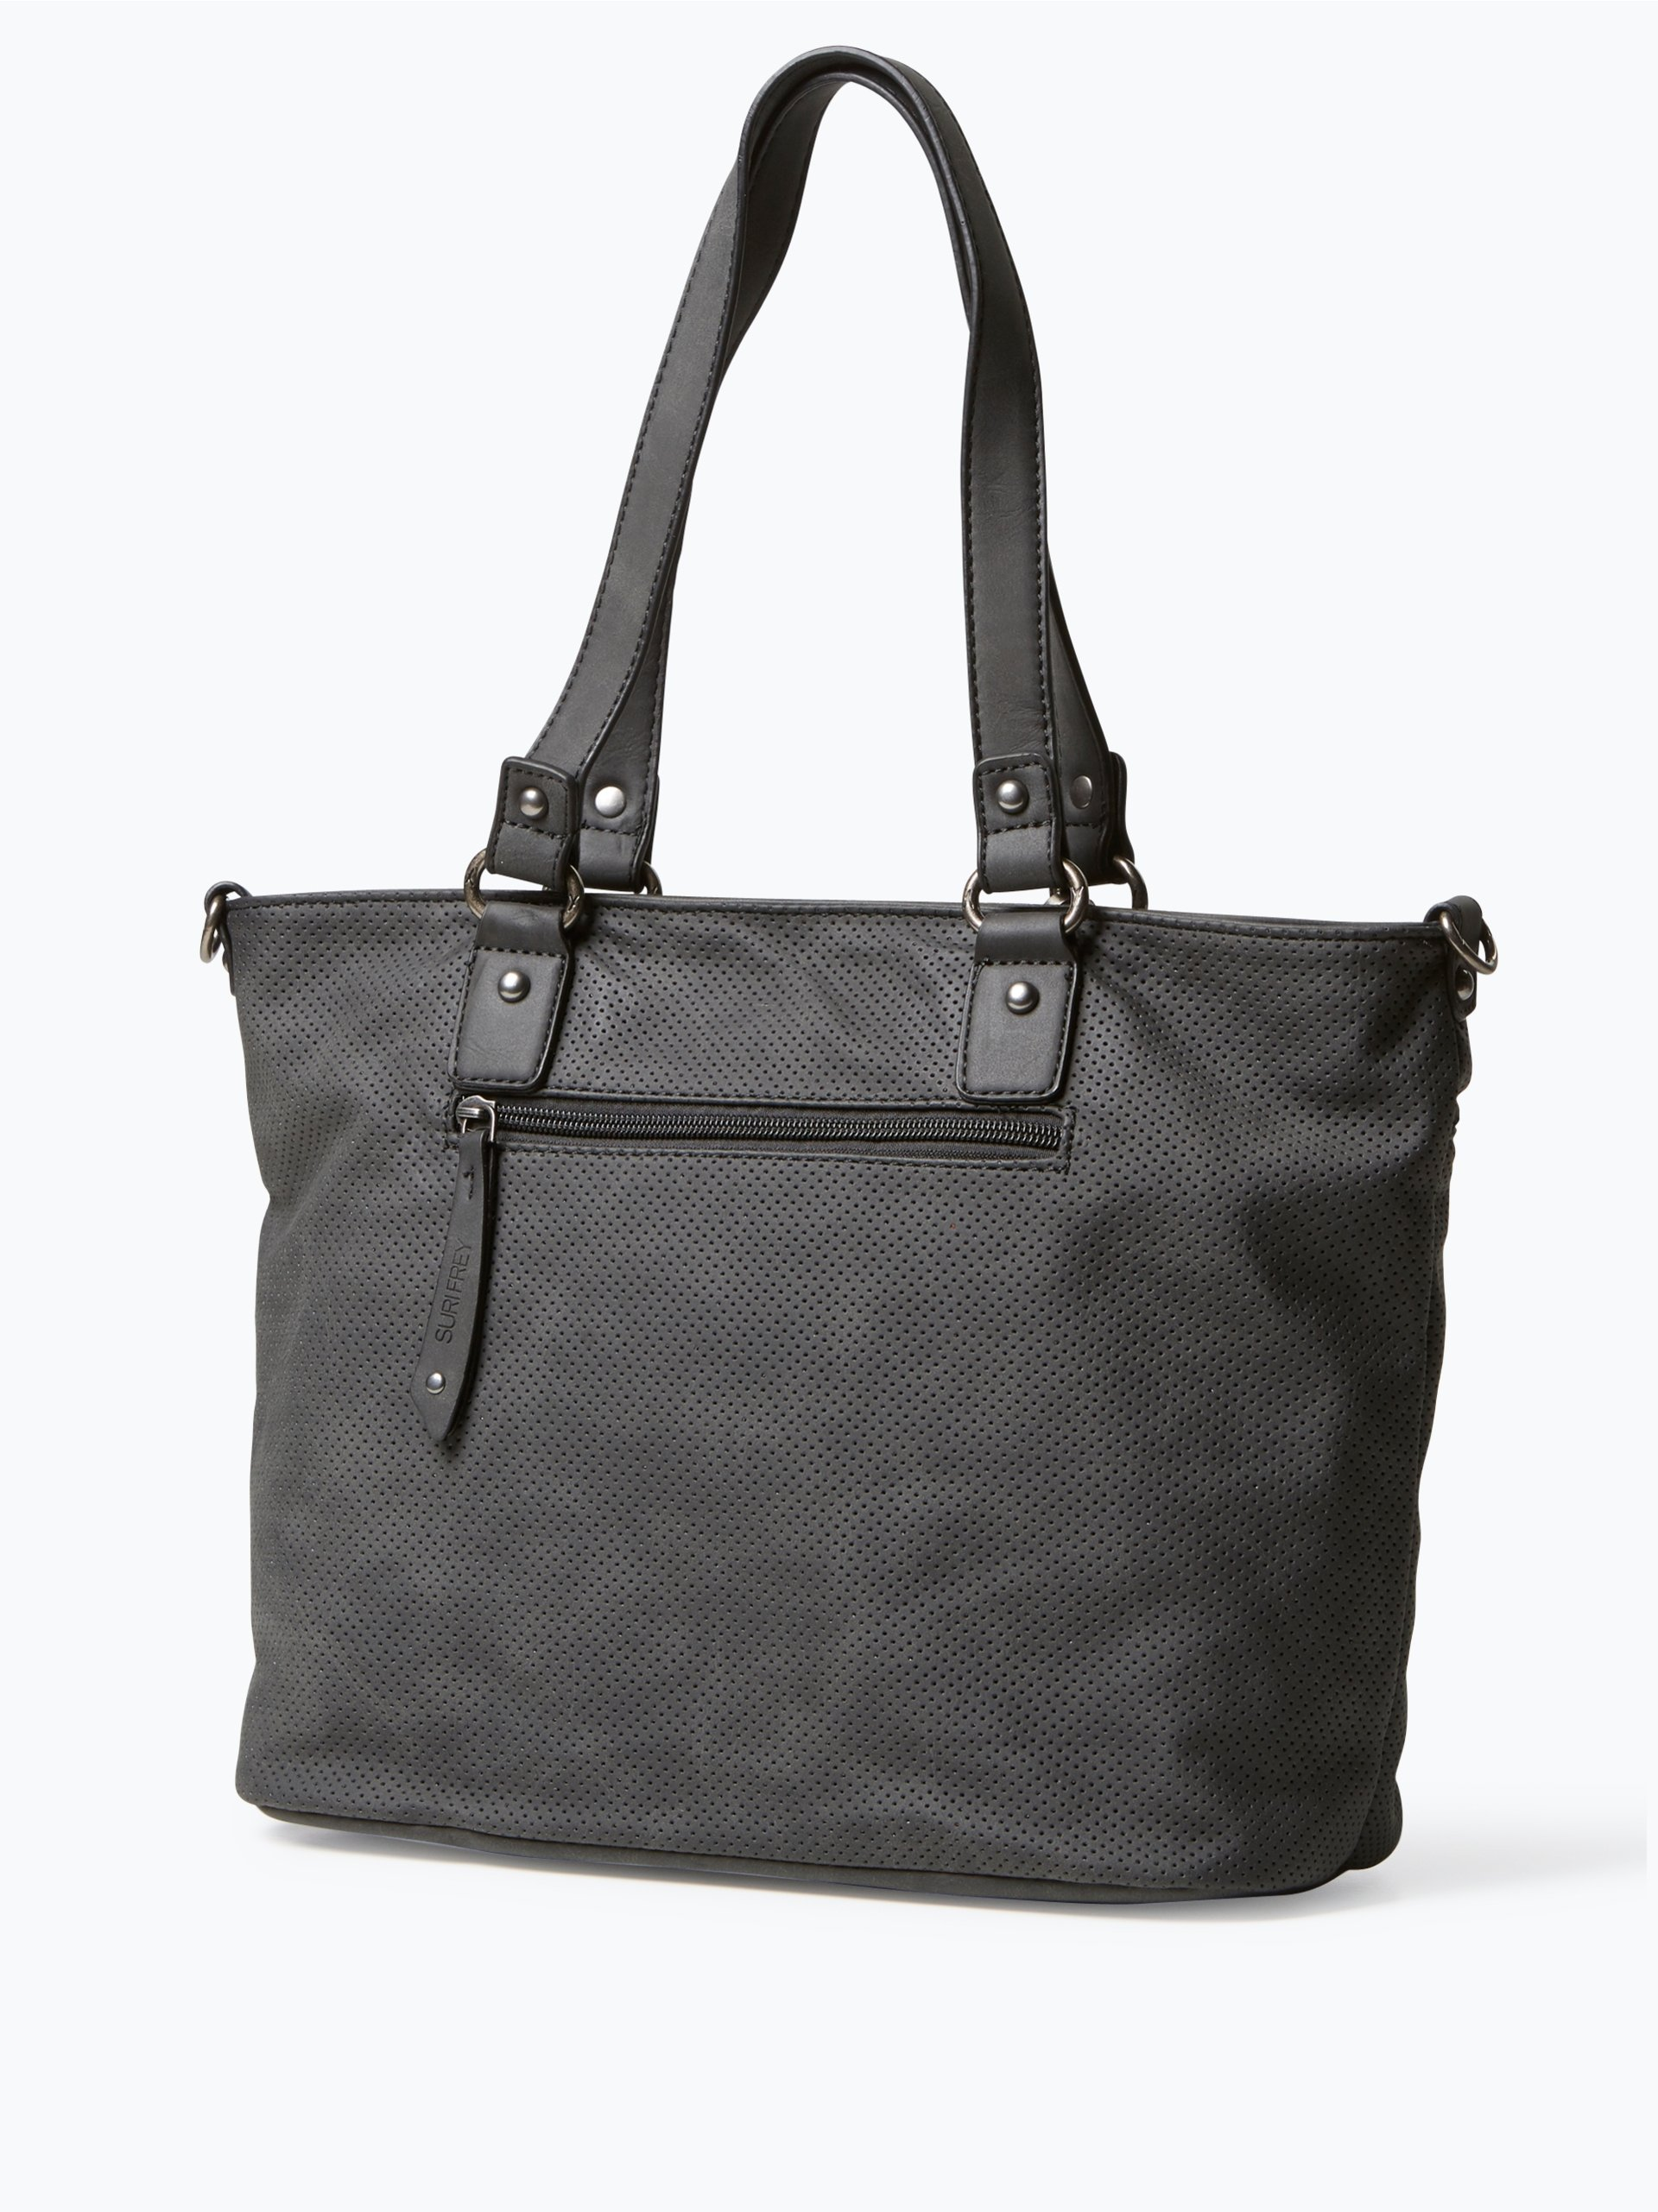 Suri Frey Damen Handtasche in Leder-Optik - Romy